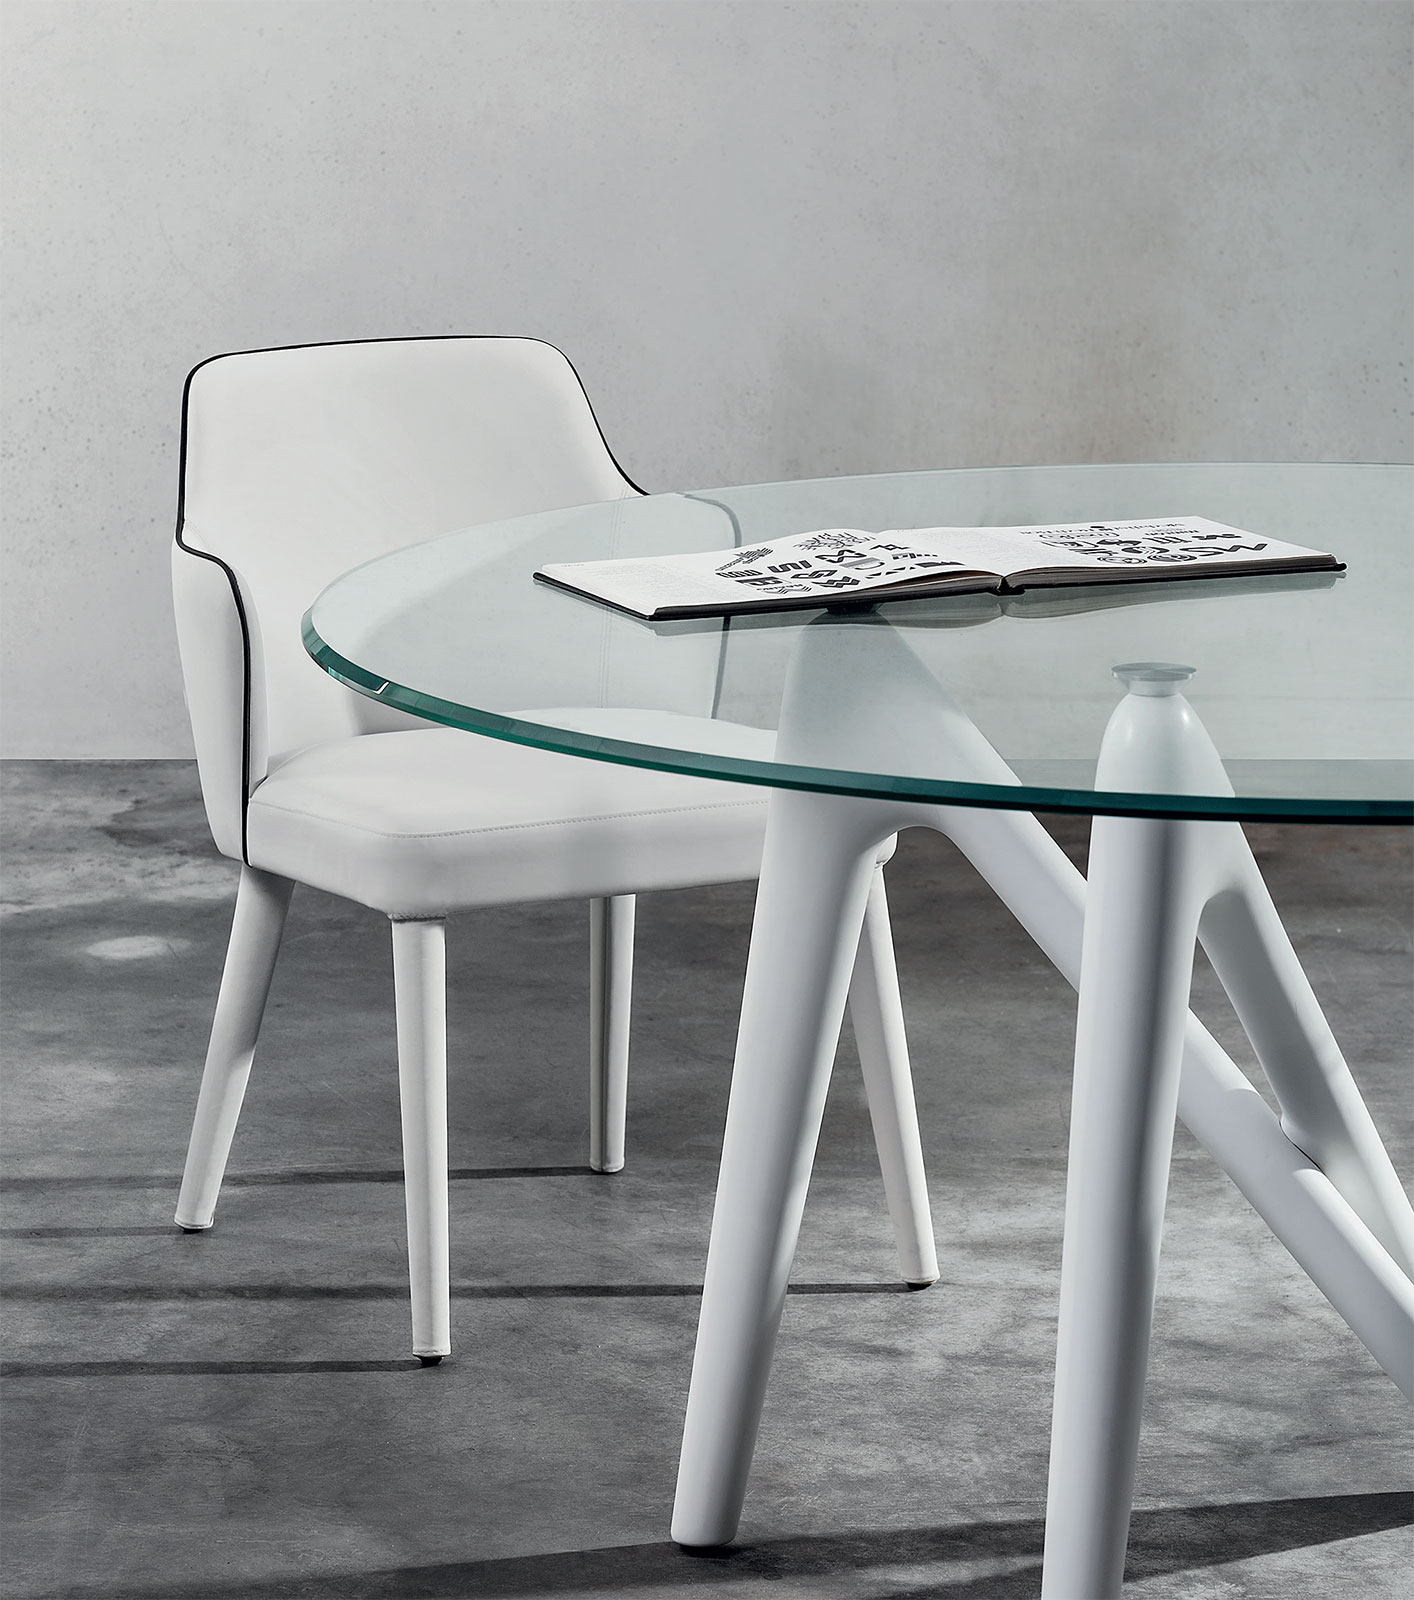 Design by Andrea Lucatello, 100% made in Italy, a stunning round dining table. Tremped glass clear top and white lacquered polyurethane legs. Free delivery.